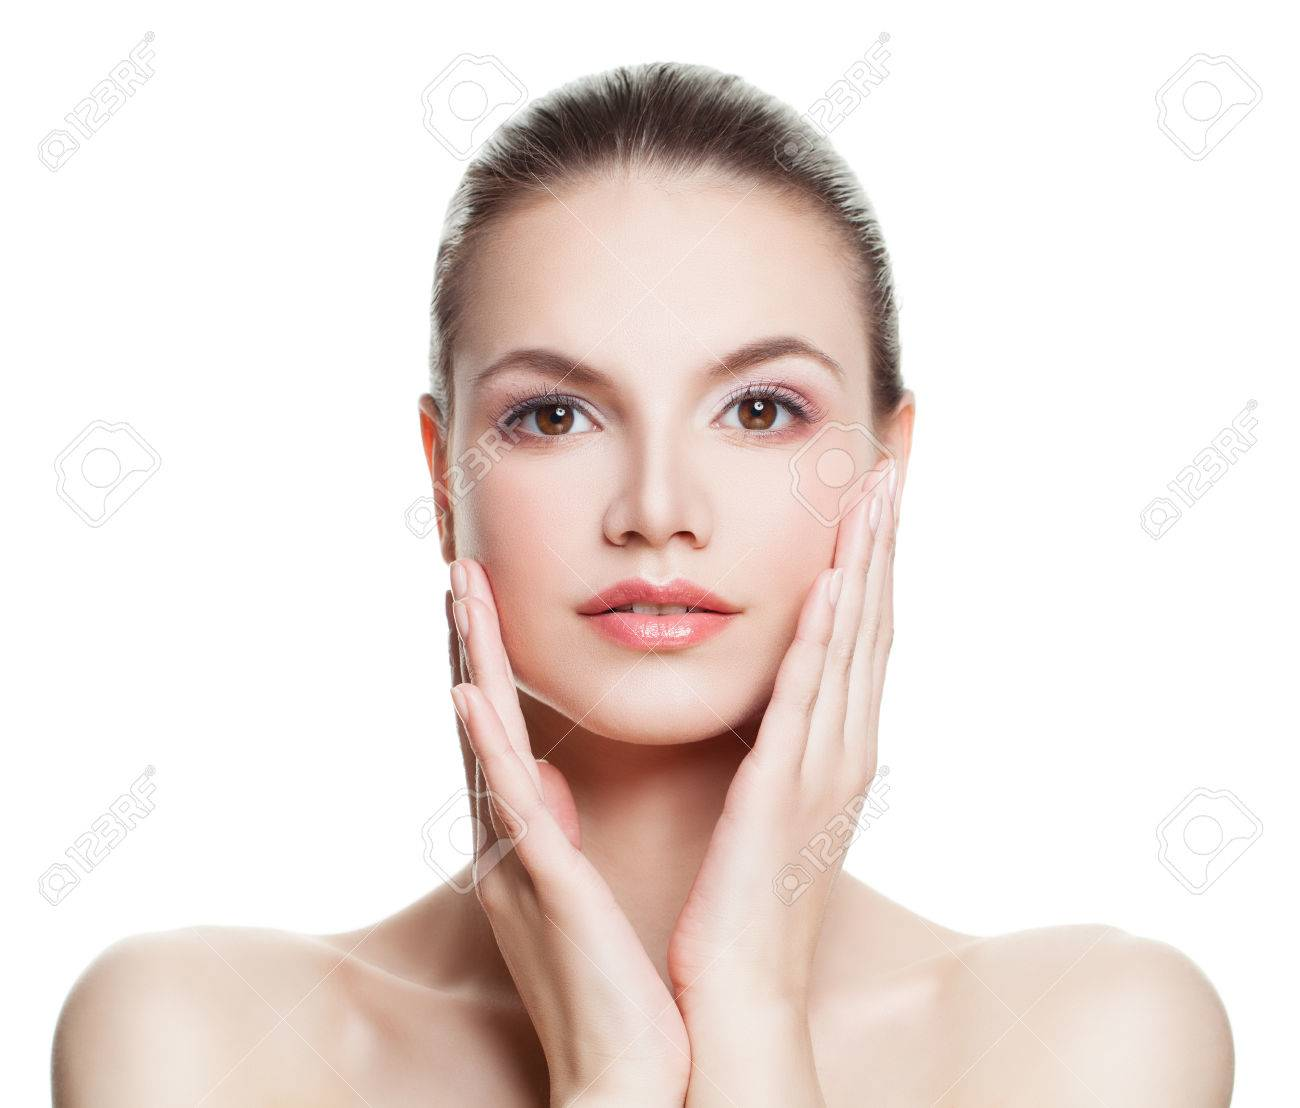 Spa Woman with Clean Skin Touching her Hand Her Face. Spa Beauty, Facial Treatment and Cosmetology - 72044614